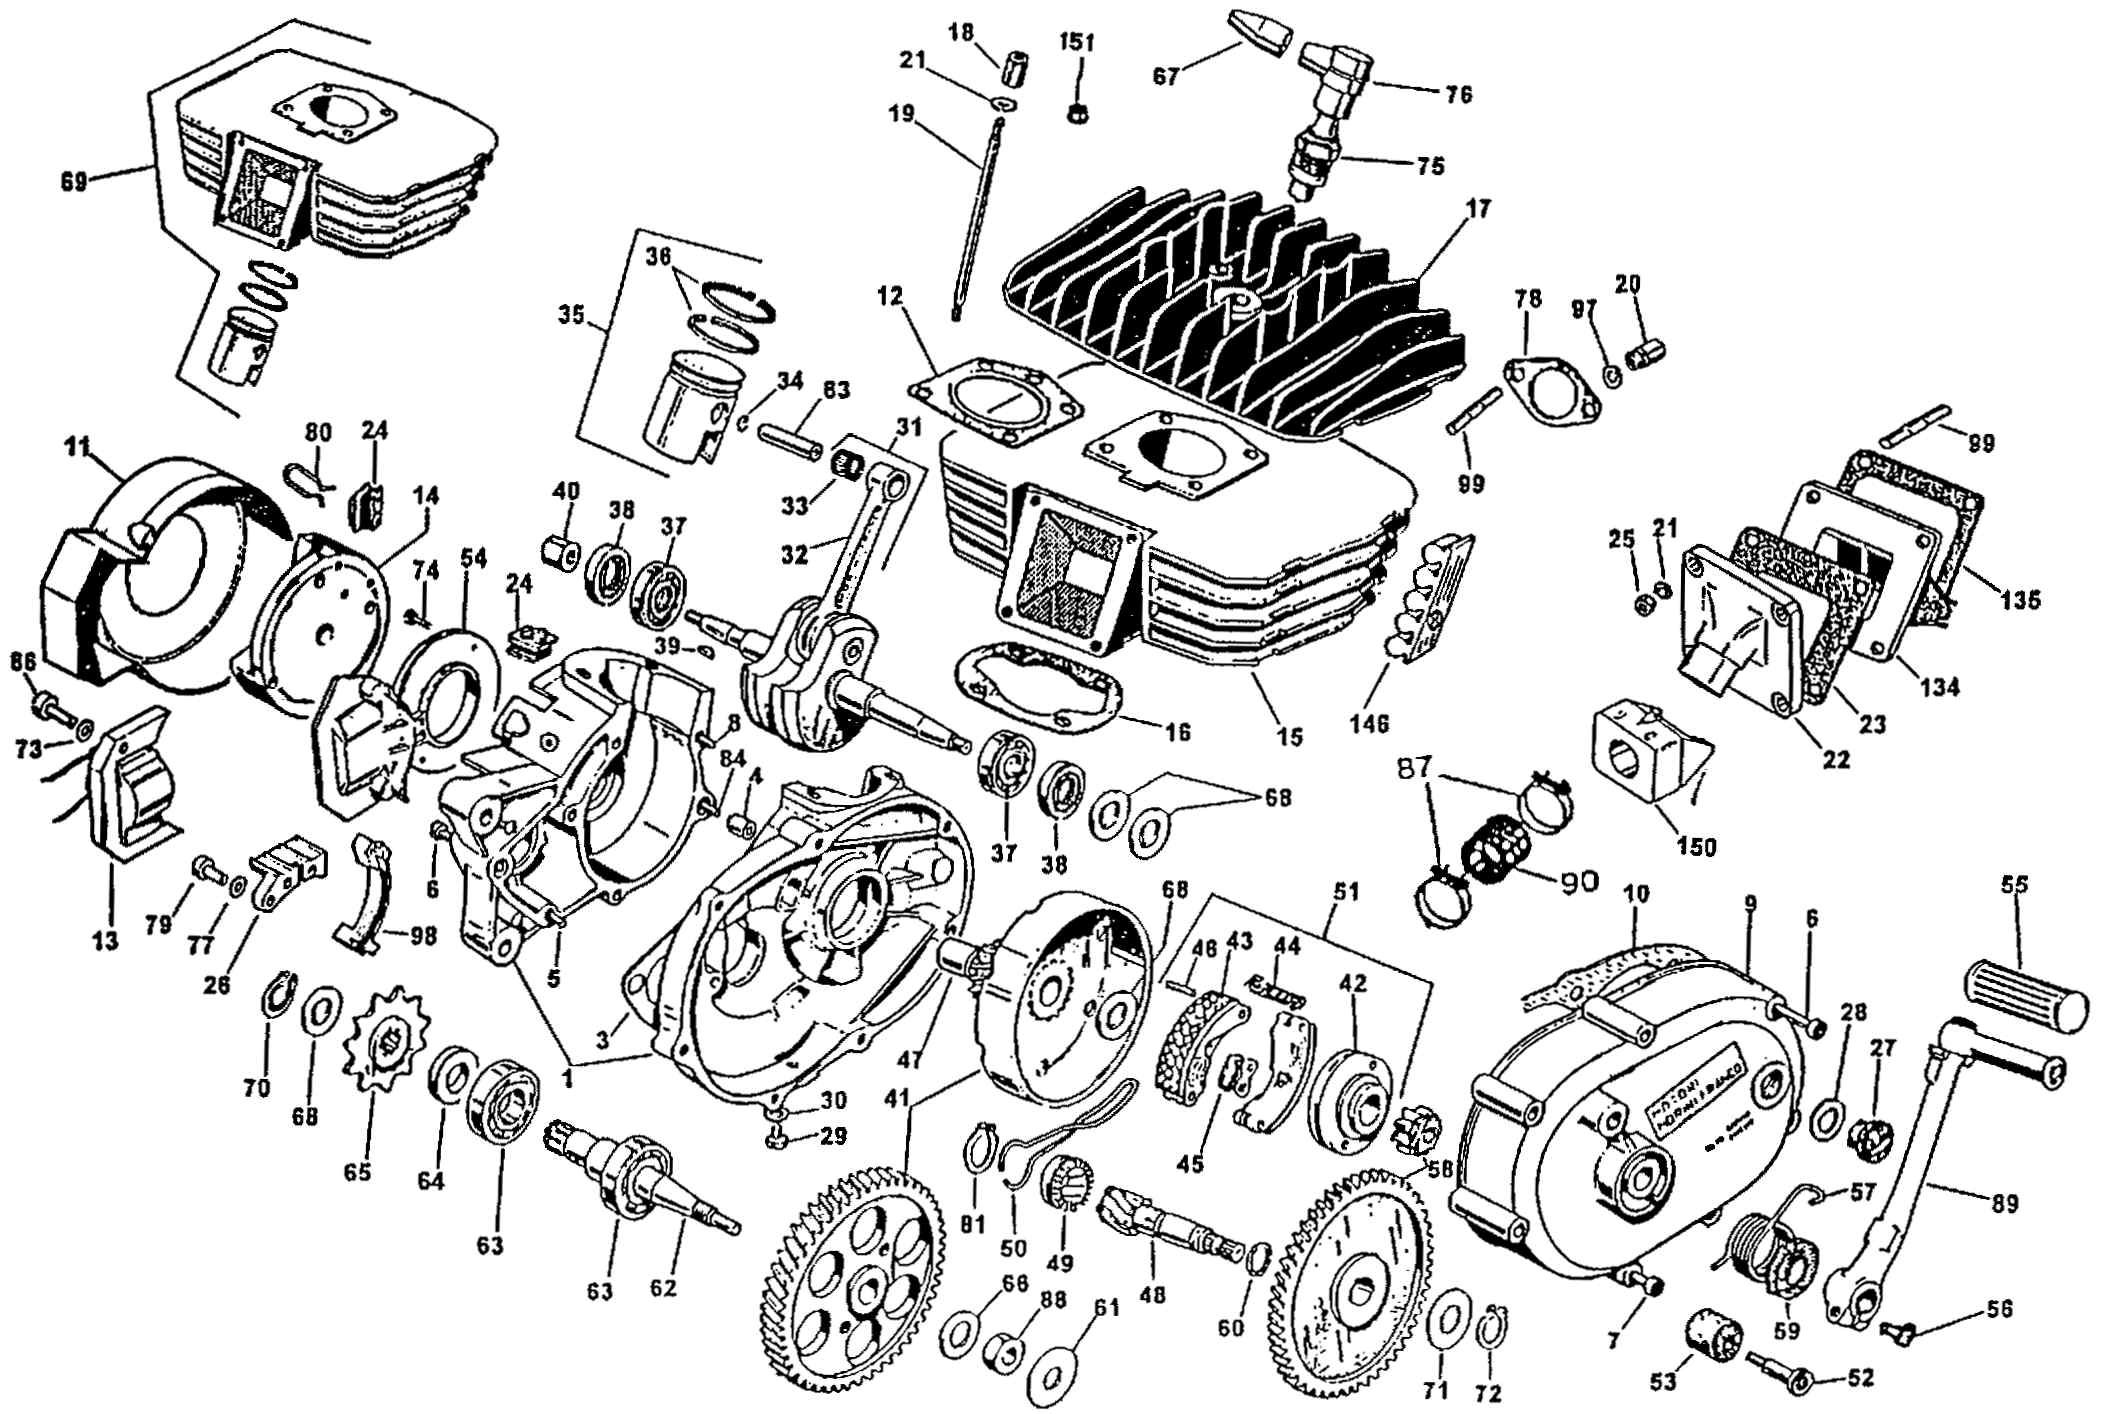 Motorcycle Engine Exploded View With Images Motorcycle Engine